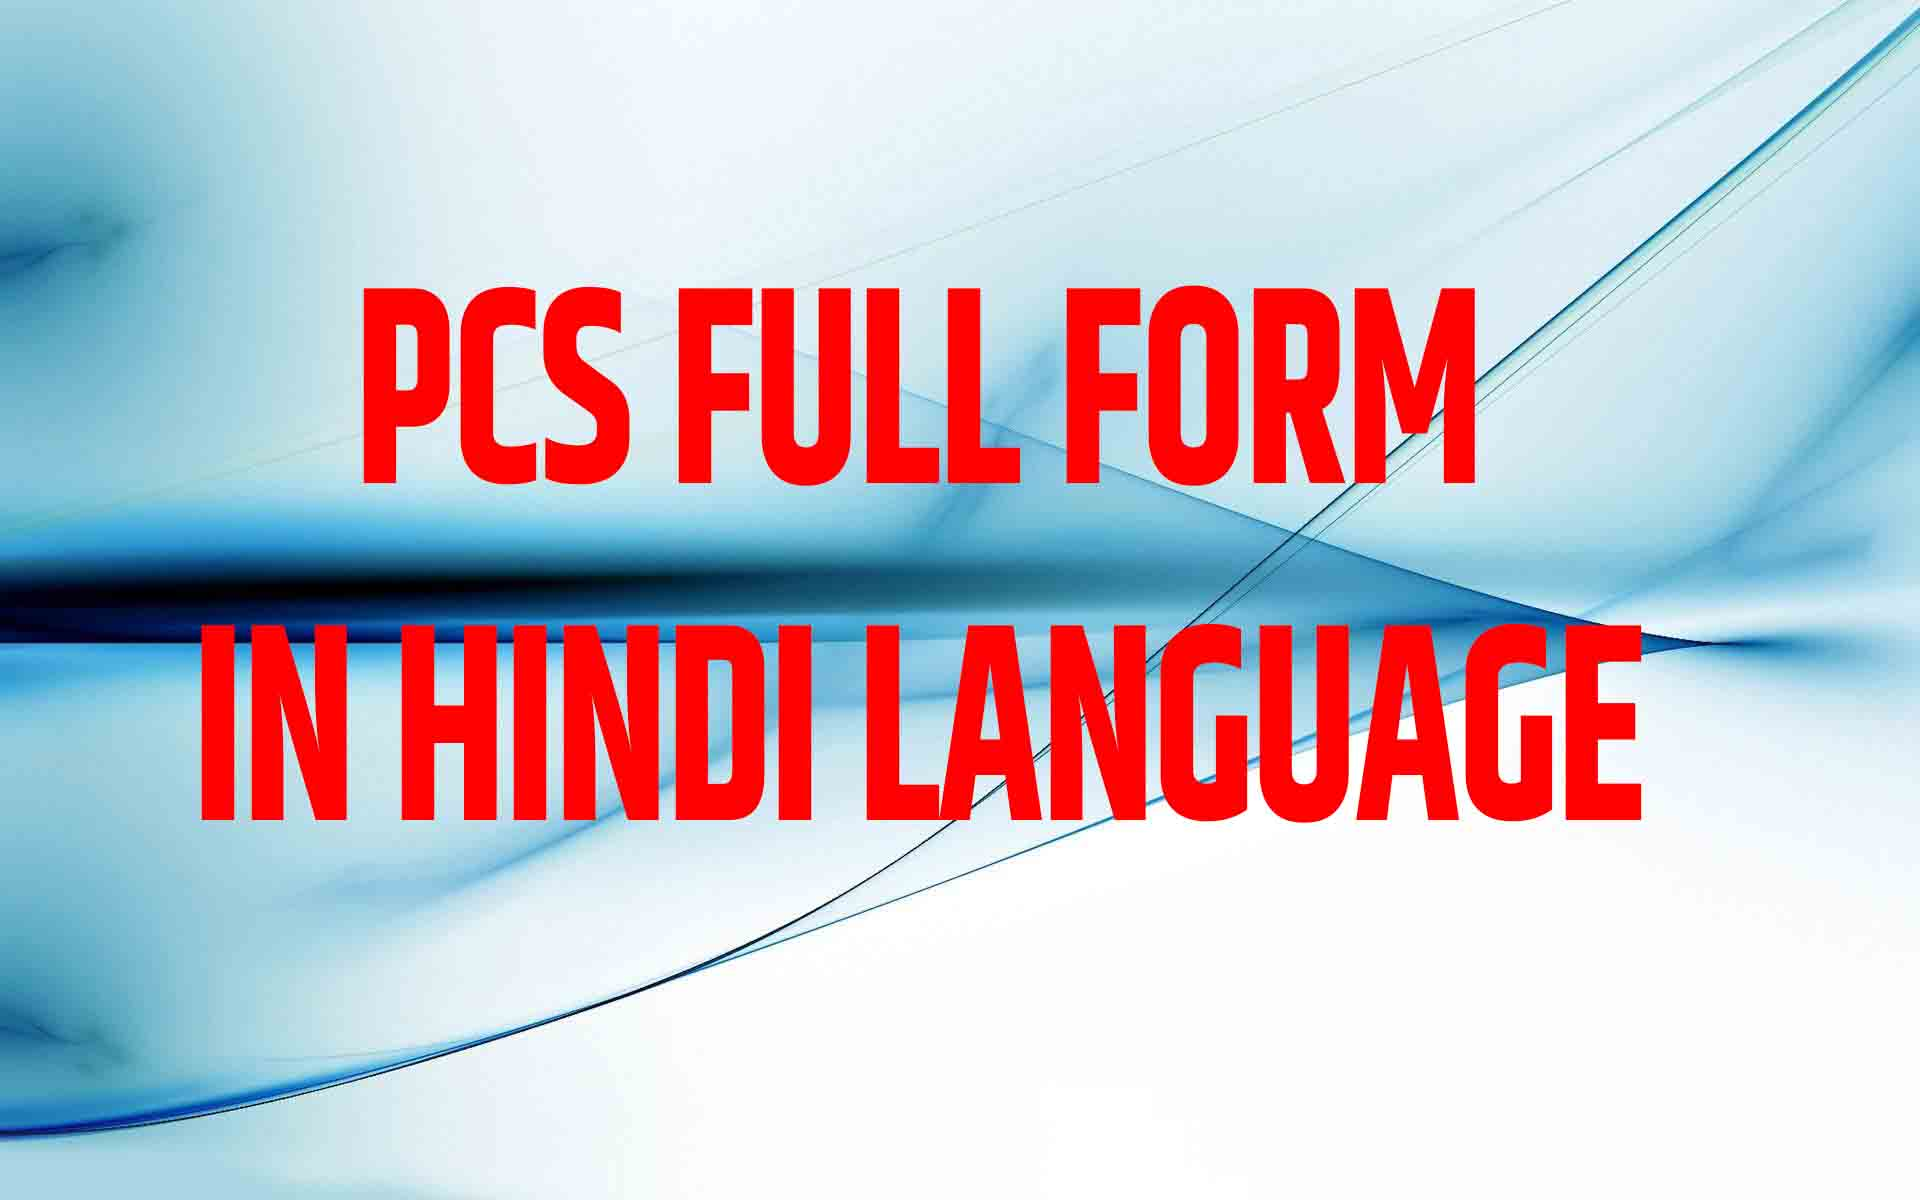 pcs full form in hindi language